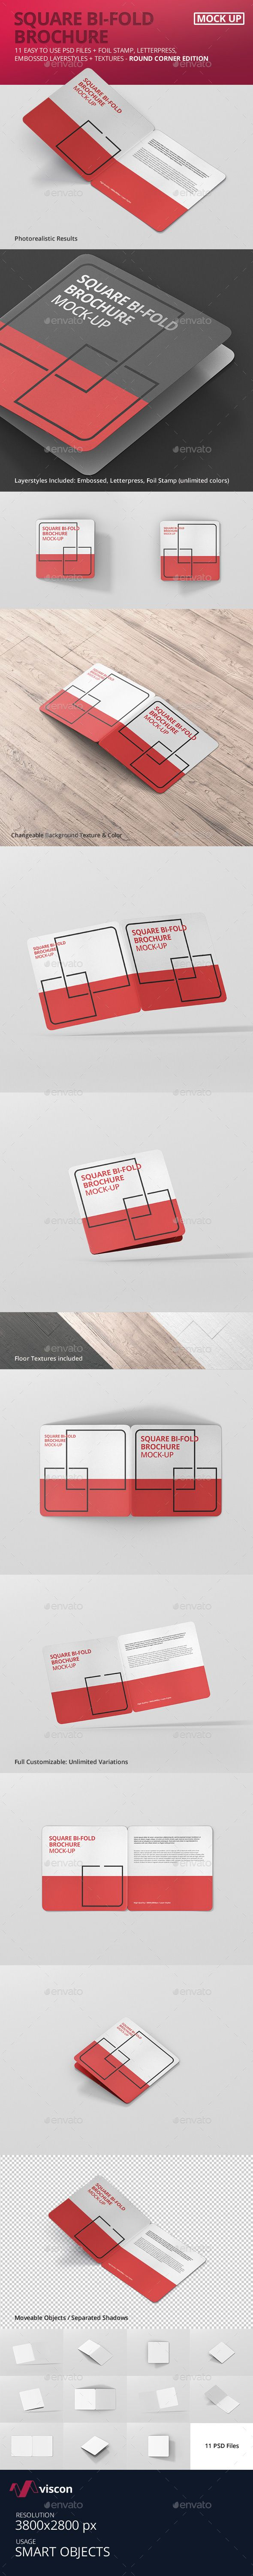 Square Bi-Fold Brochure Mock-Up - Round Corner. Download here: graphicriver.net/...